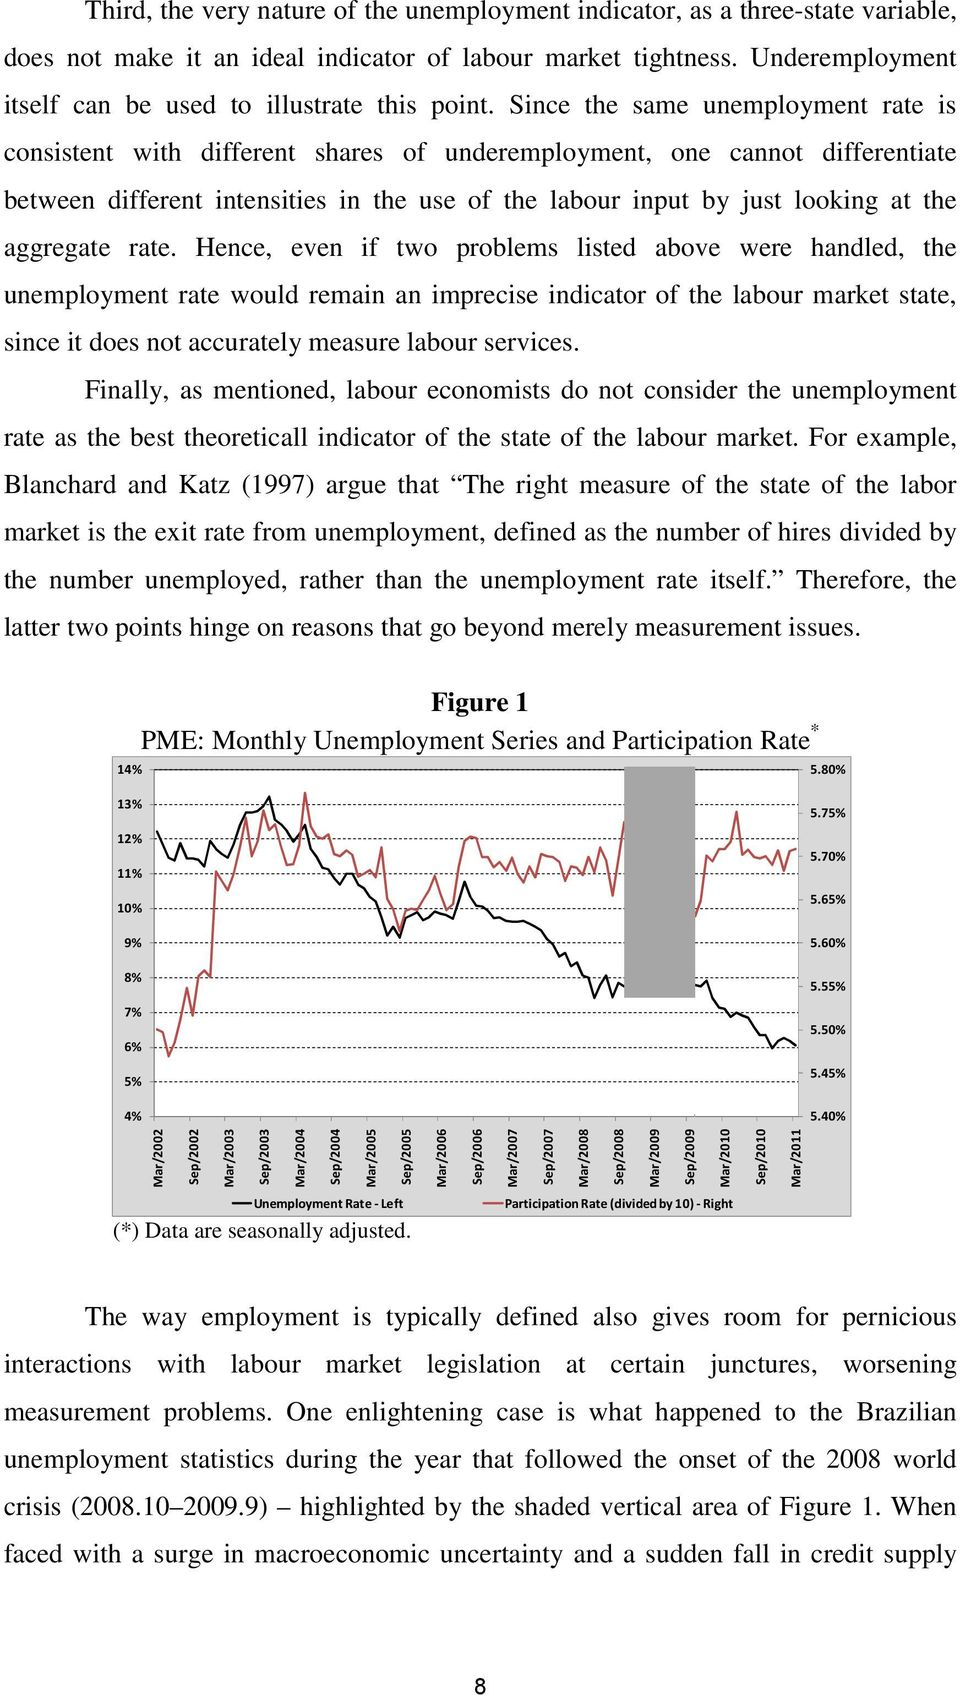 Since the same unemployment rate is consistent with different shares of underemployment, one cannot differentiate between different intensities in the use of the labour input by just looking at the